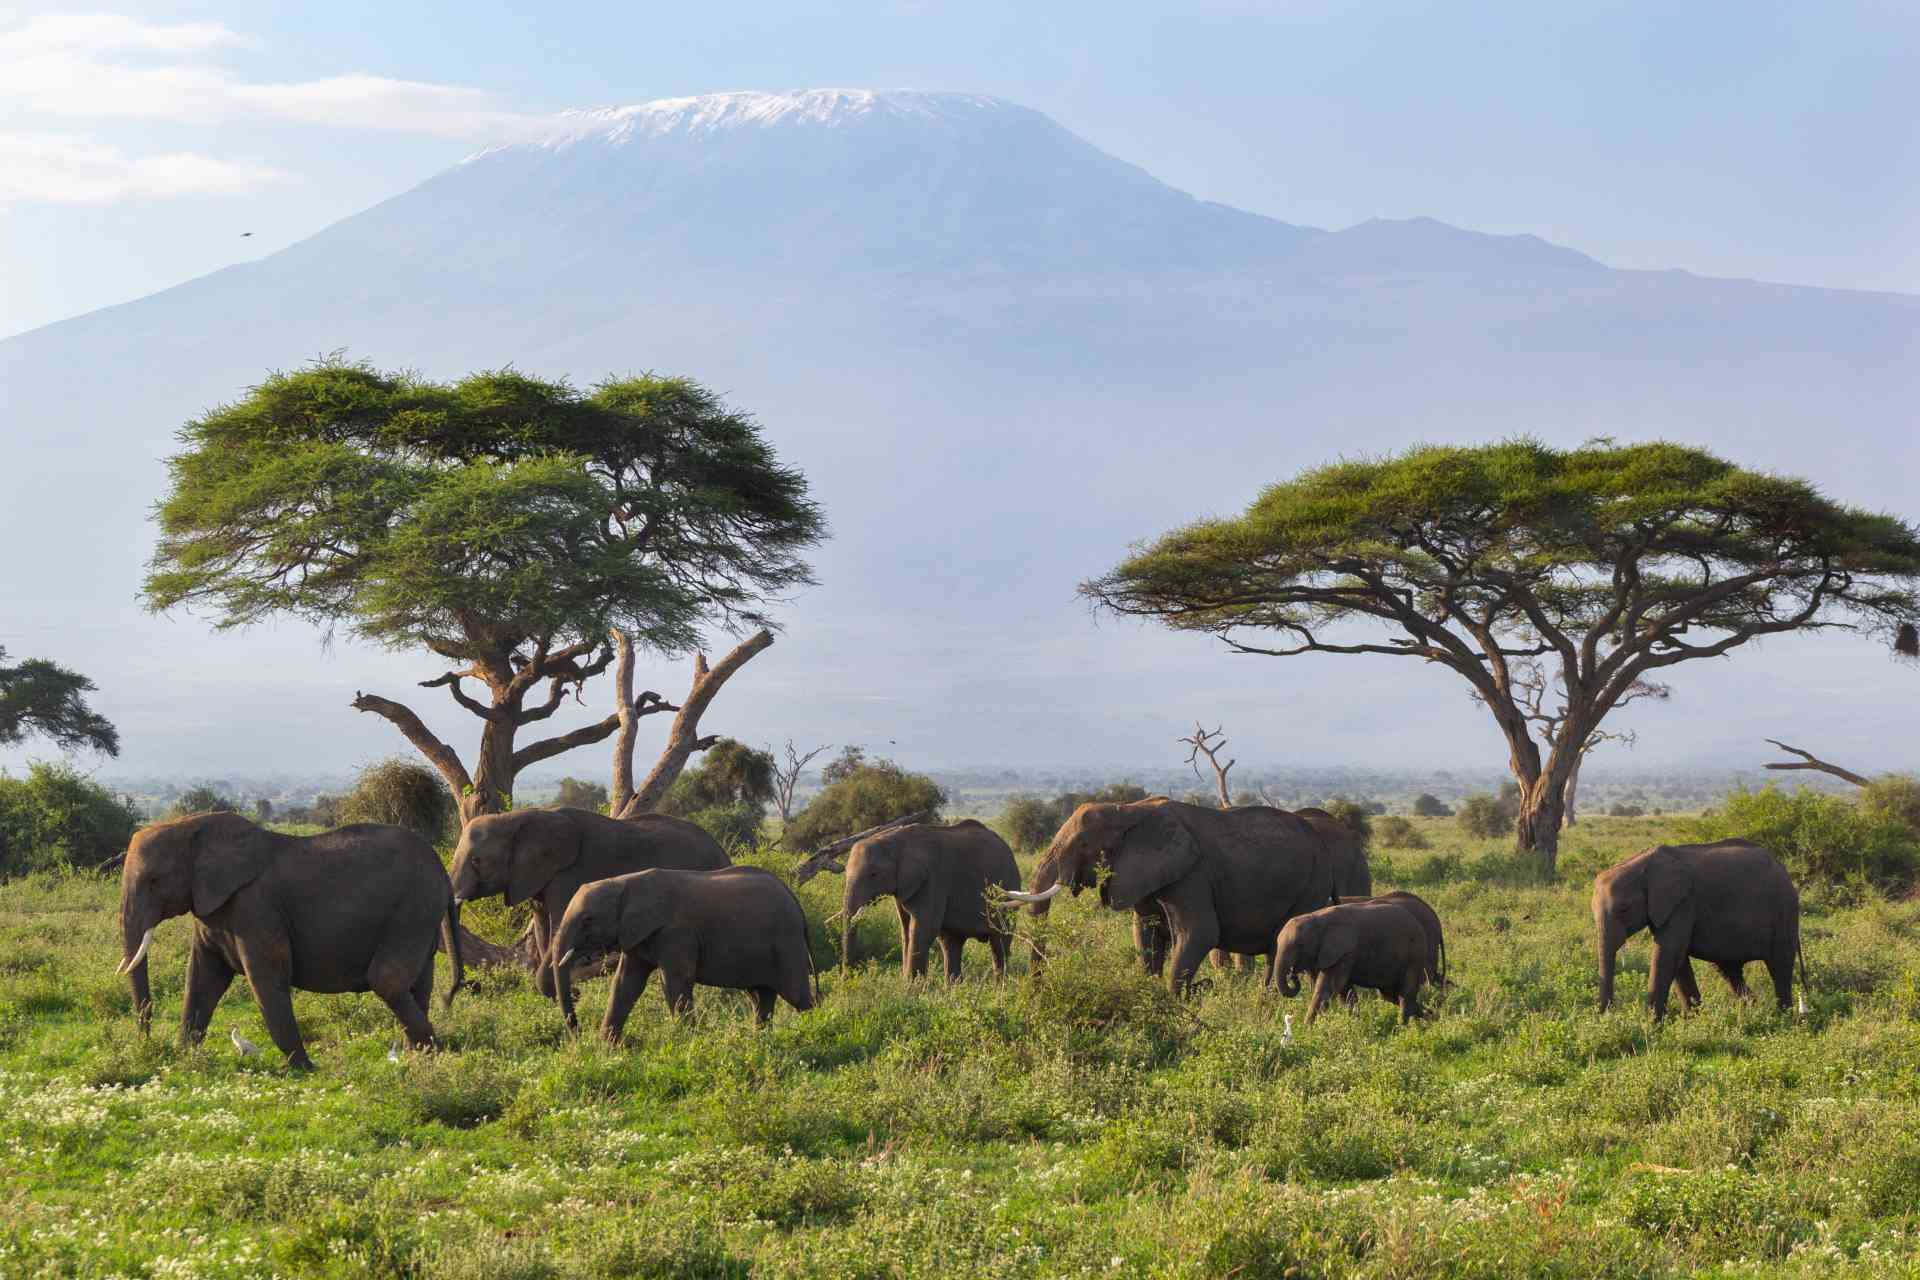 Mt Kilimanjaro and elephants, Amboseli National Park by Chloe Marshman